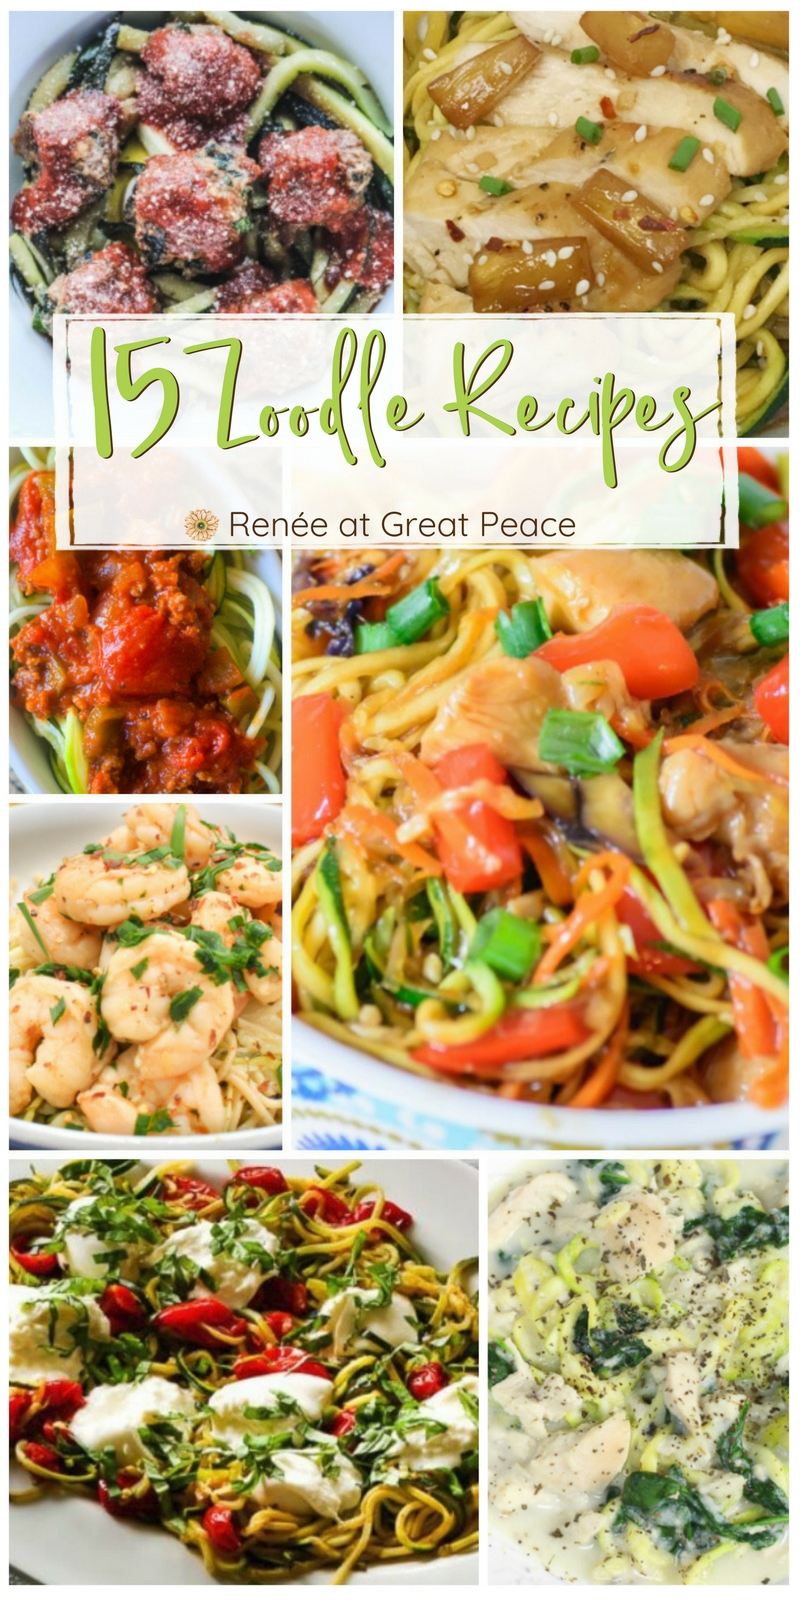 15 Zoodle Recipes you can alter to stay on the THM plan. | Renée at Great Peace #mealplanning #thm